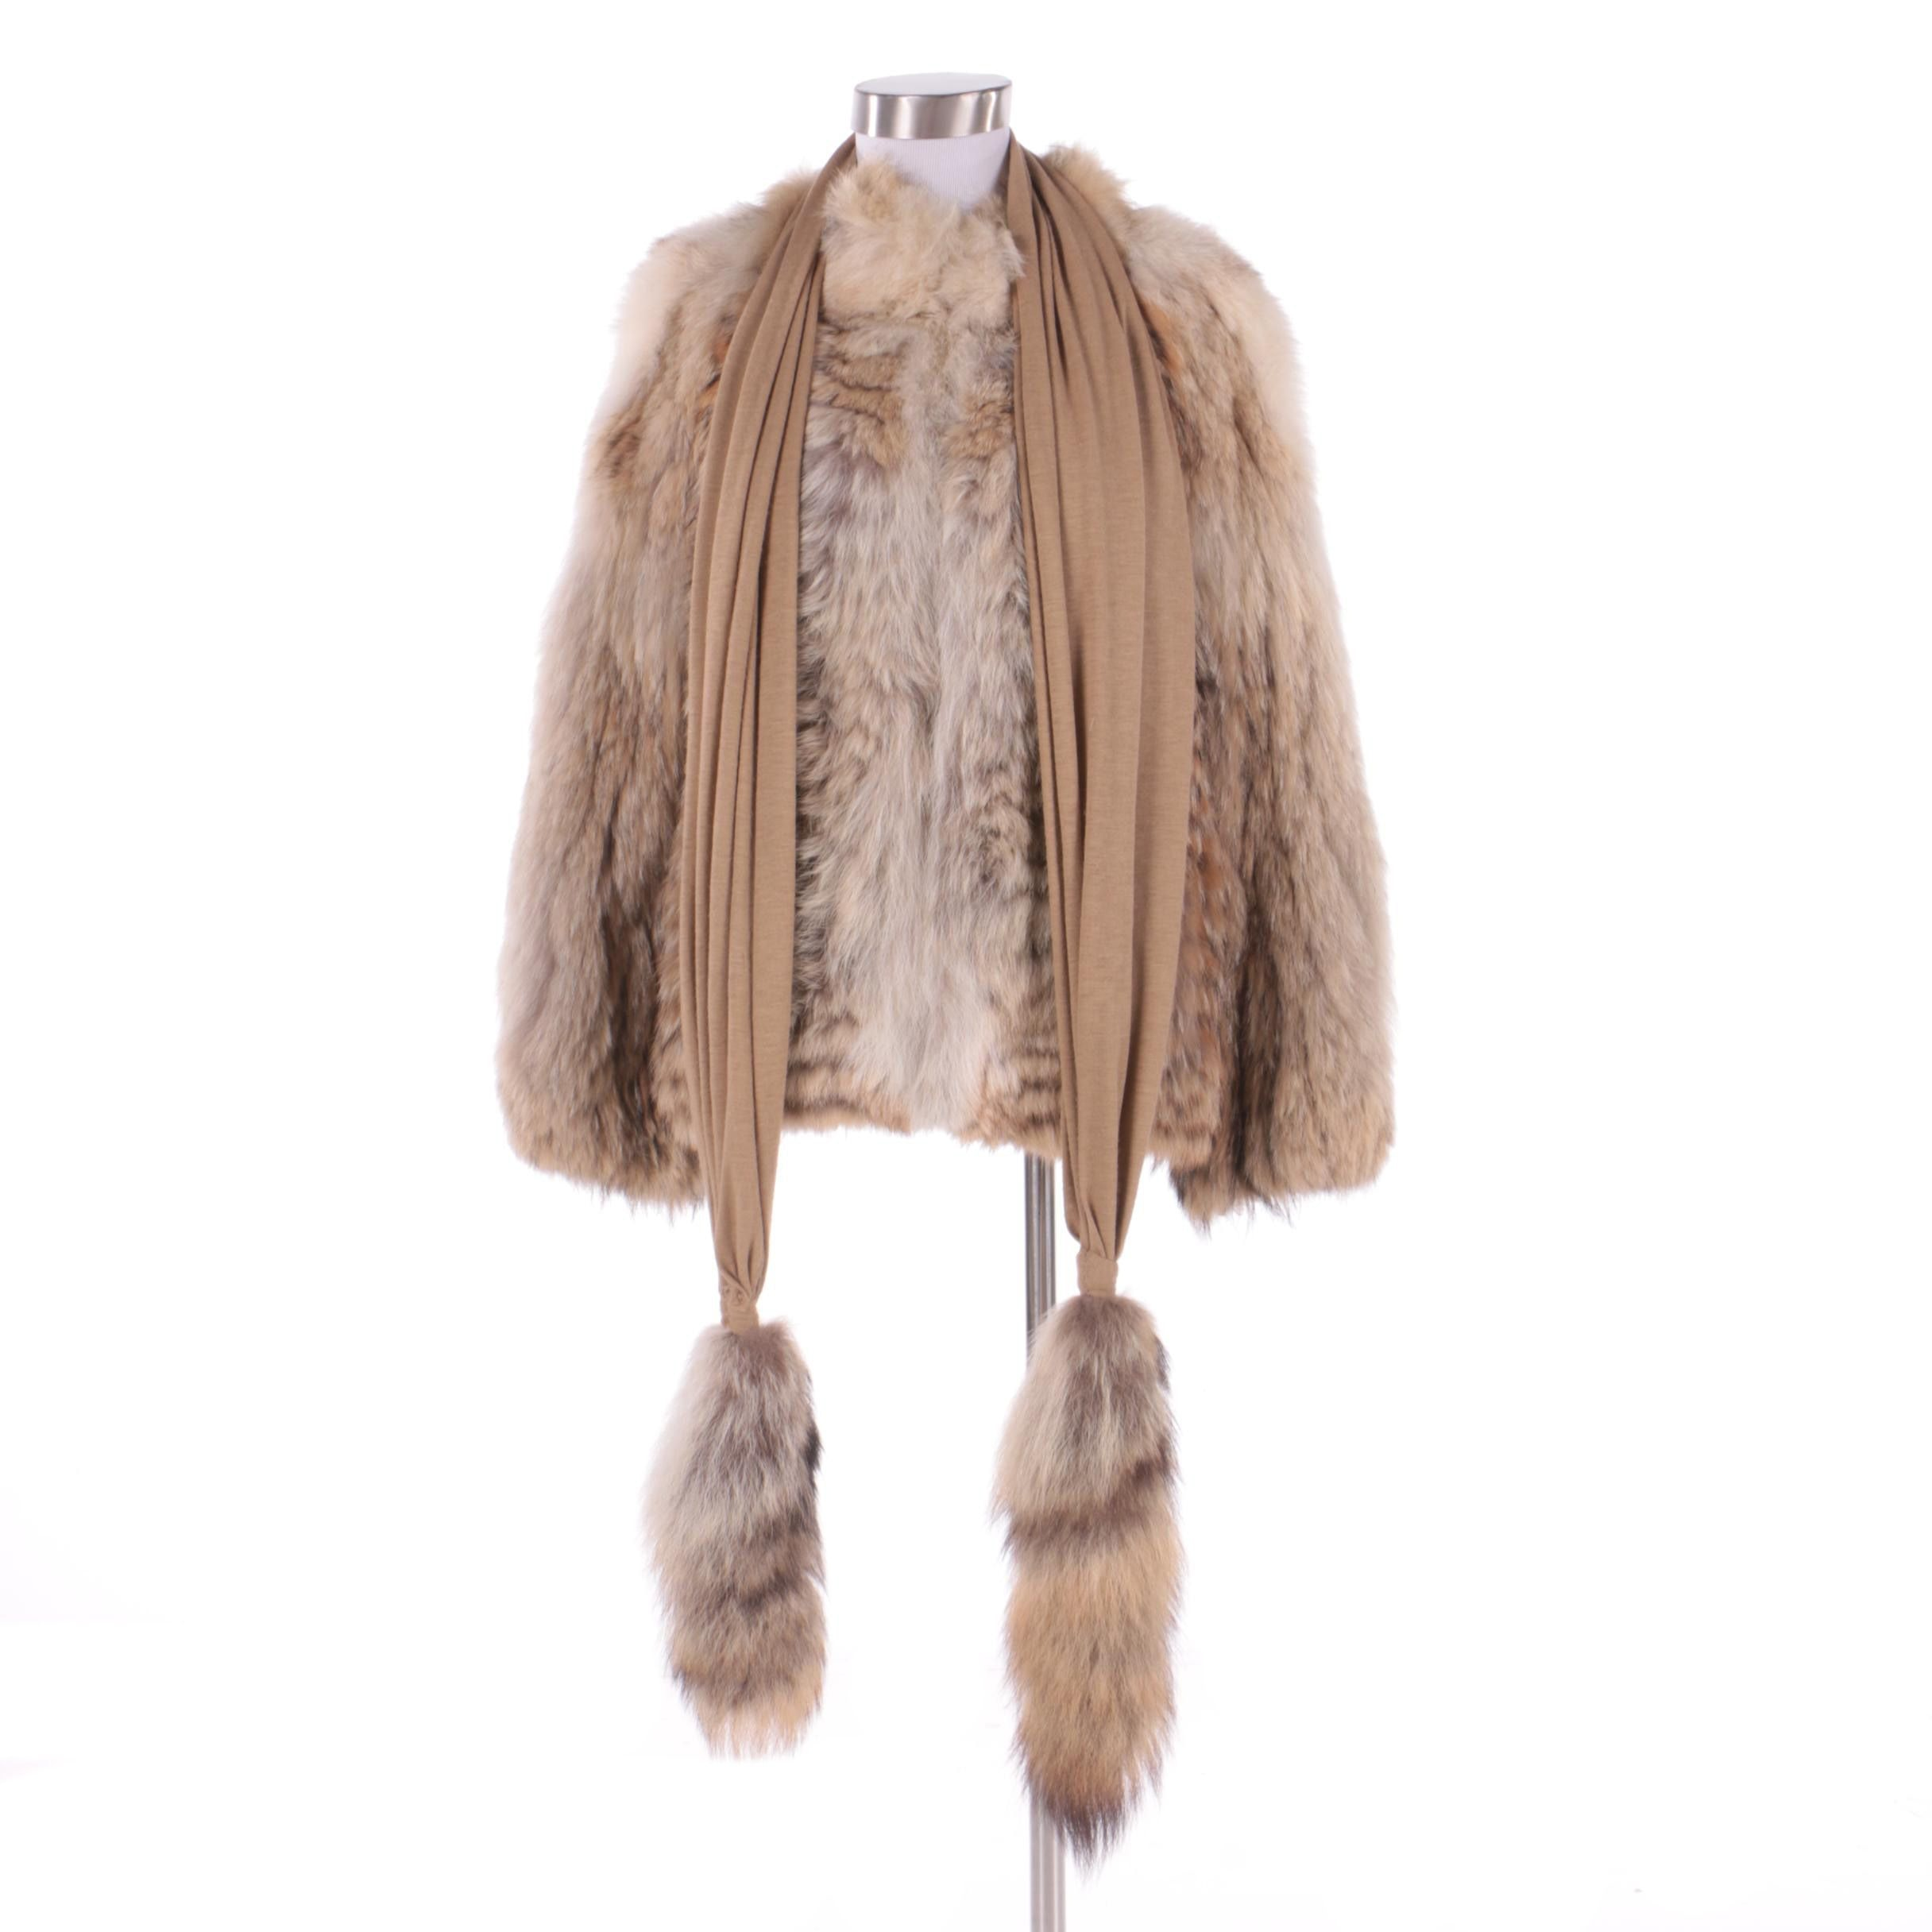 Women's Coyote Fur Jacket and Coyote Tail Fur Scarf